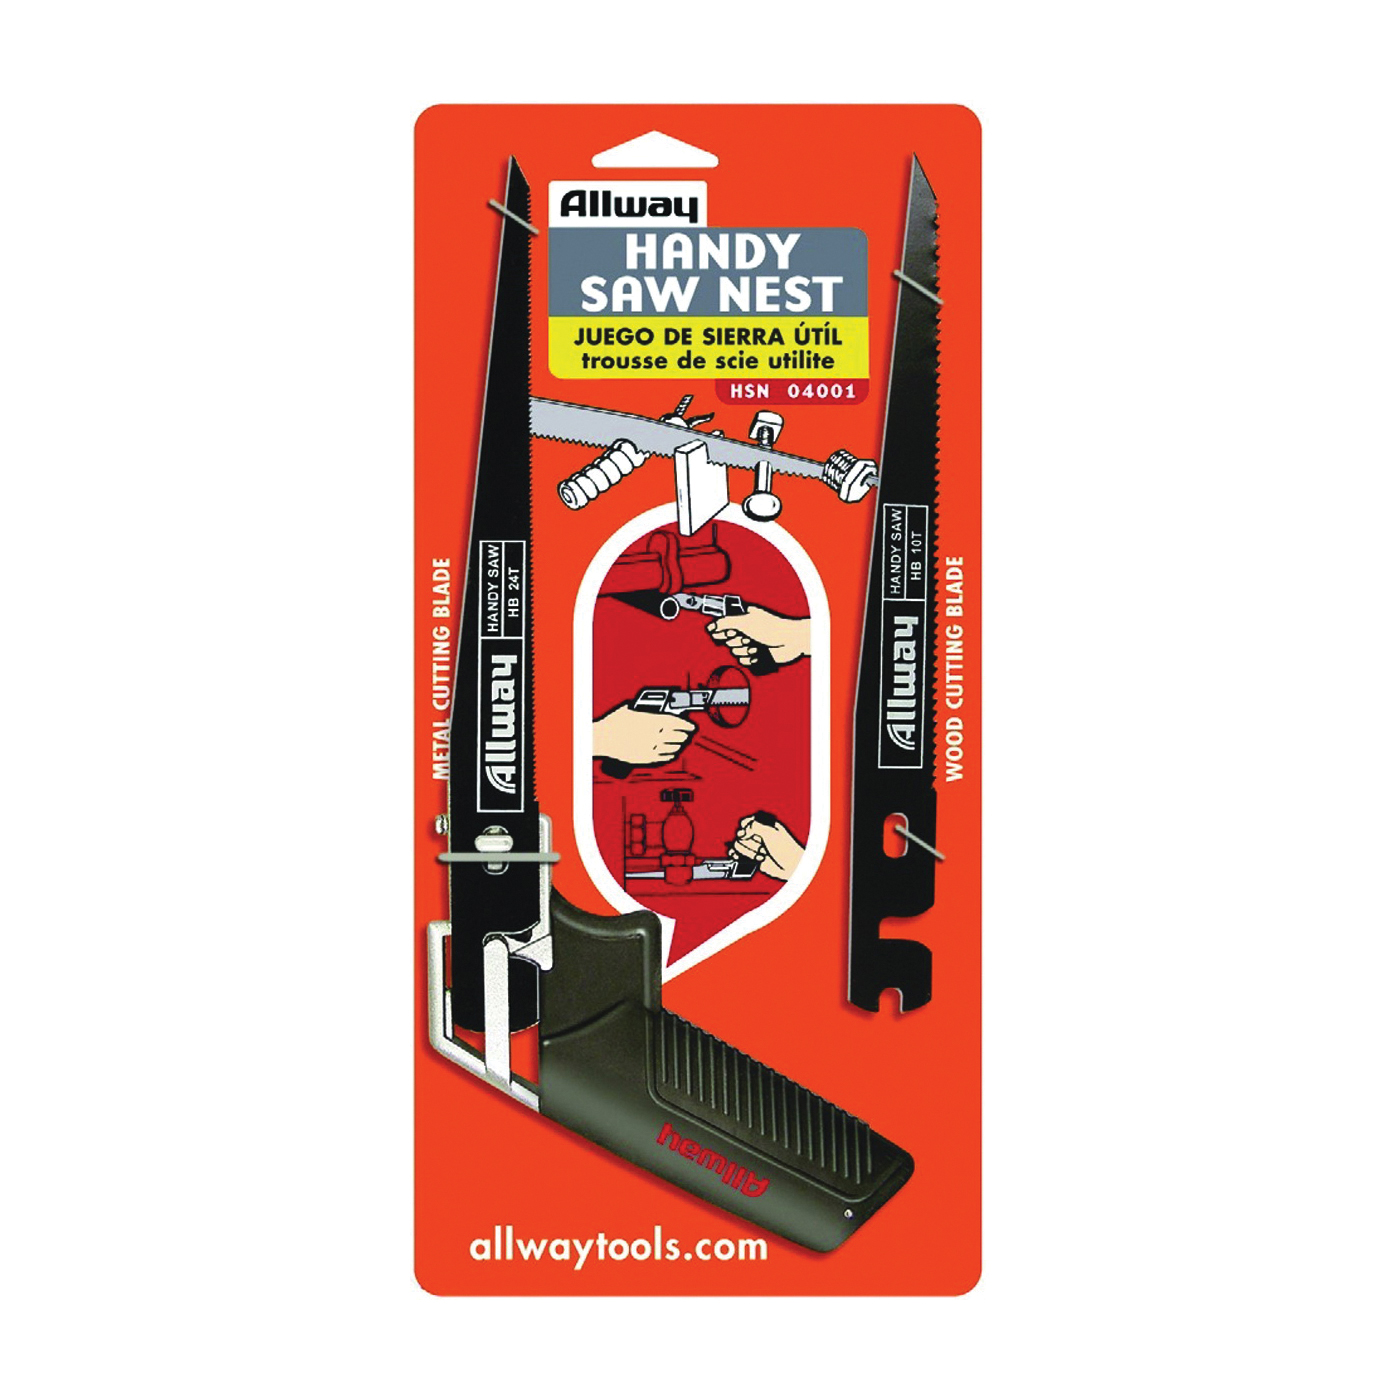 Picture of ALLWAY TOOLS HSN Handy Saw Nest, 7-1/2 in L Blade, 10 and 24 TPI